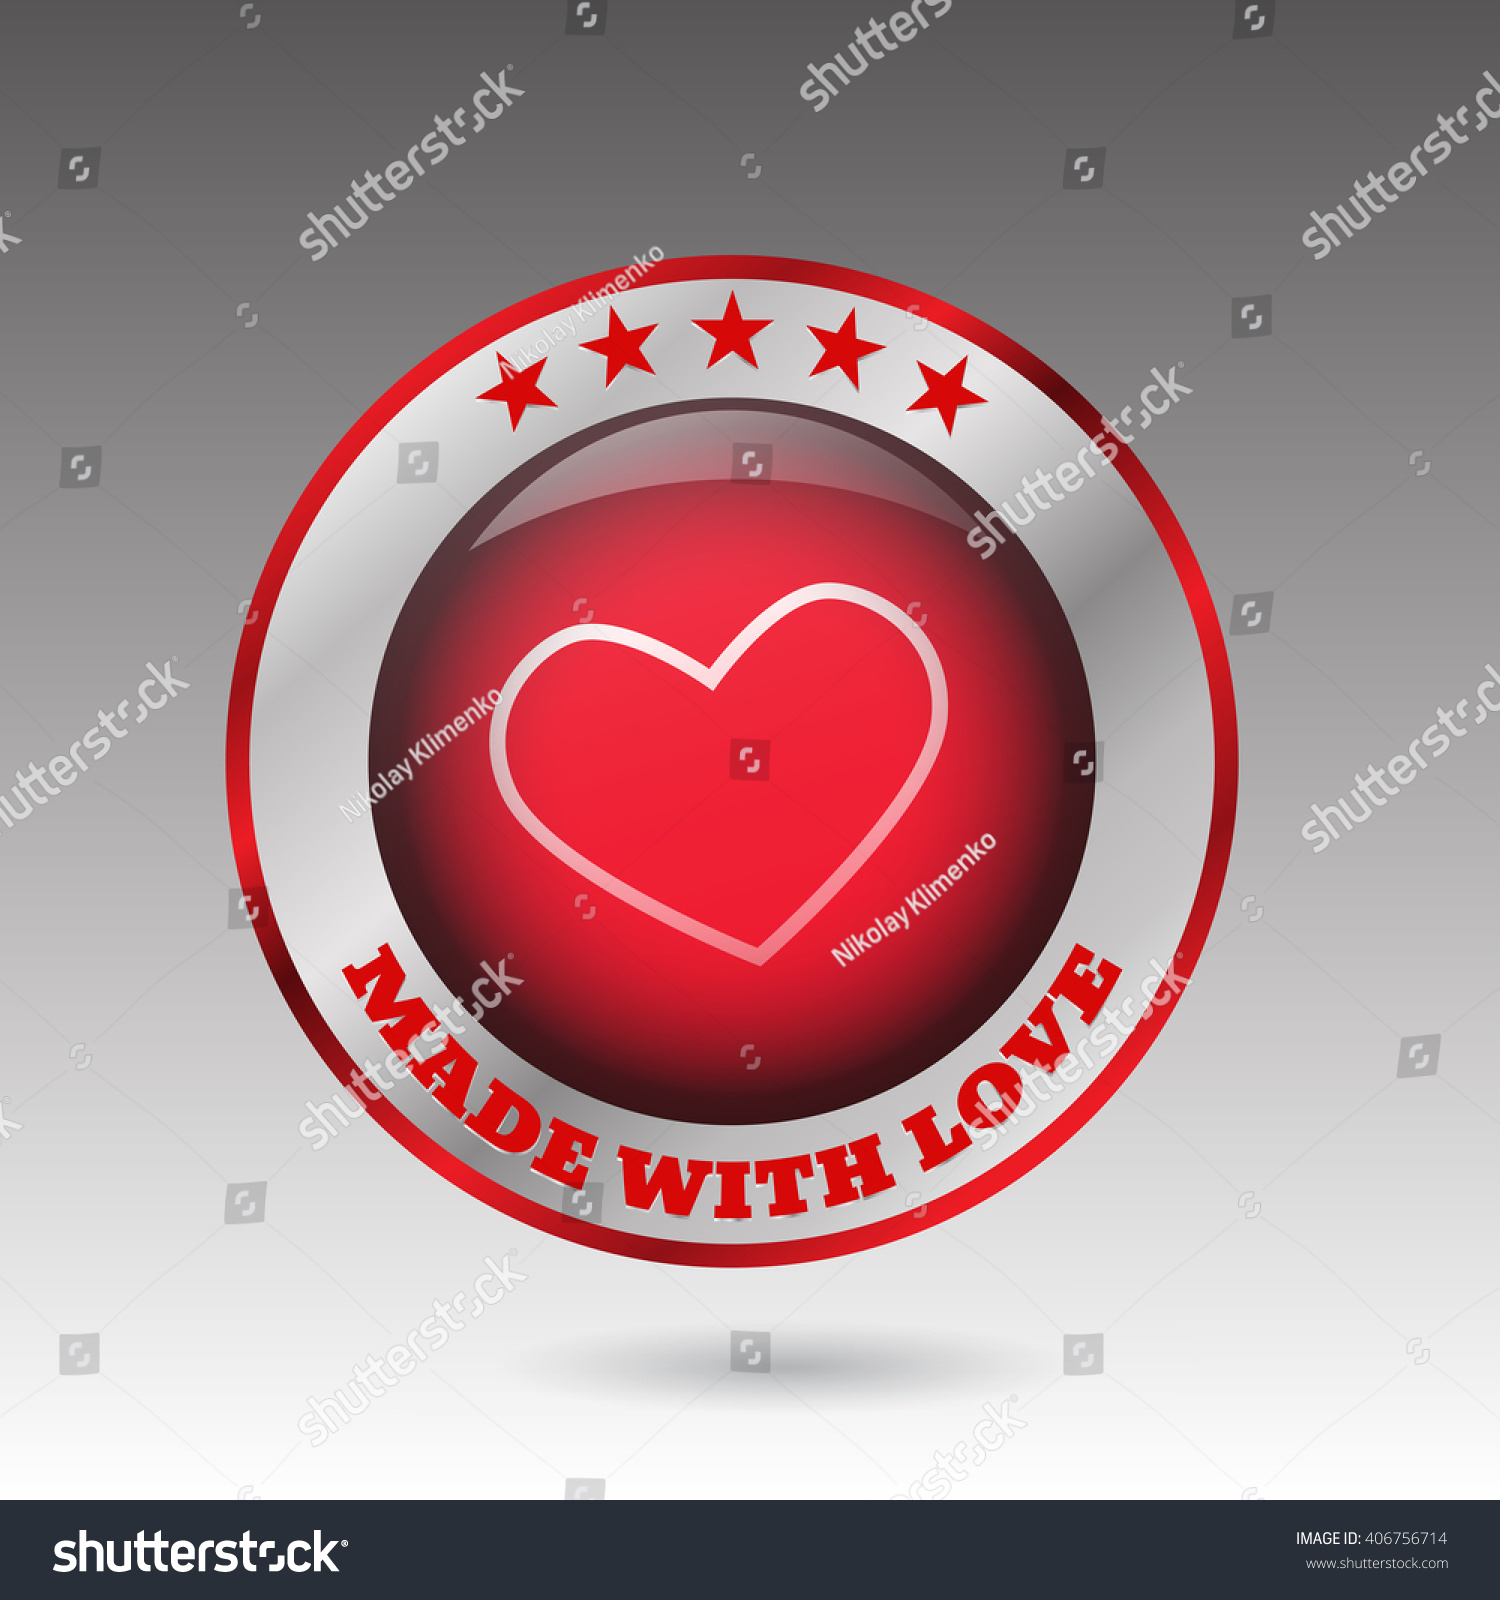 Big made love button heart symbol stock vector 406756714 big made love button heart symbol stock vector 406756714 shutterstock buycottarizona Image collections